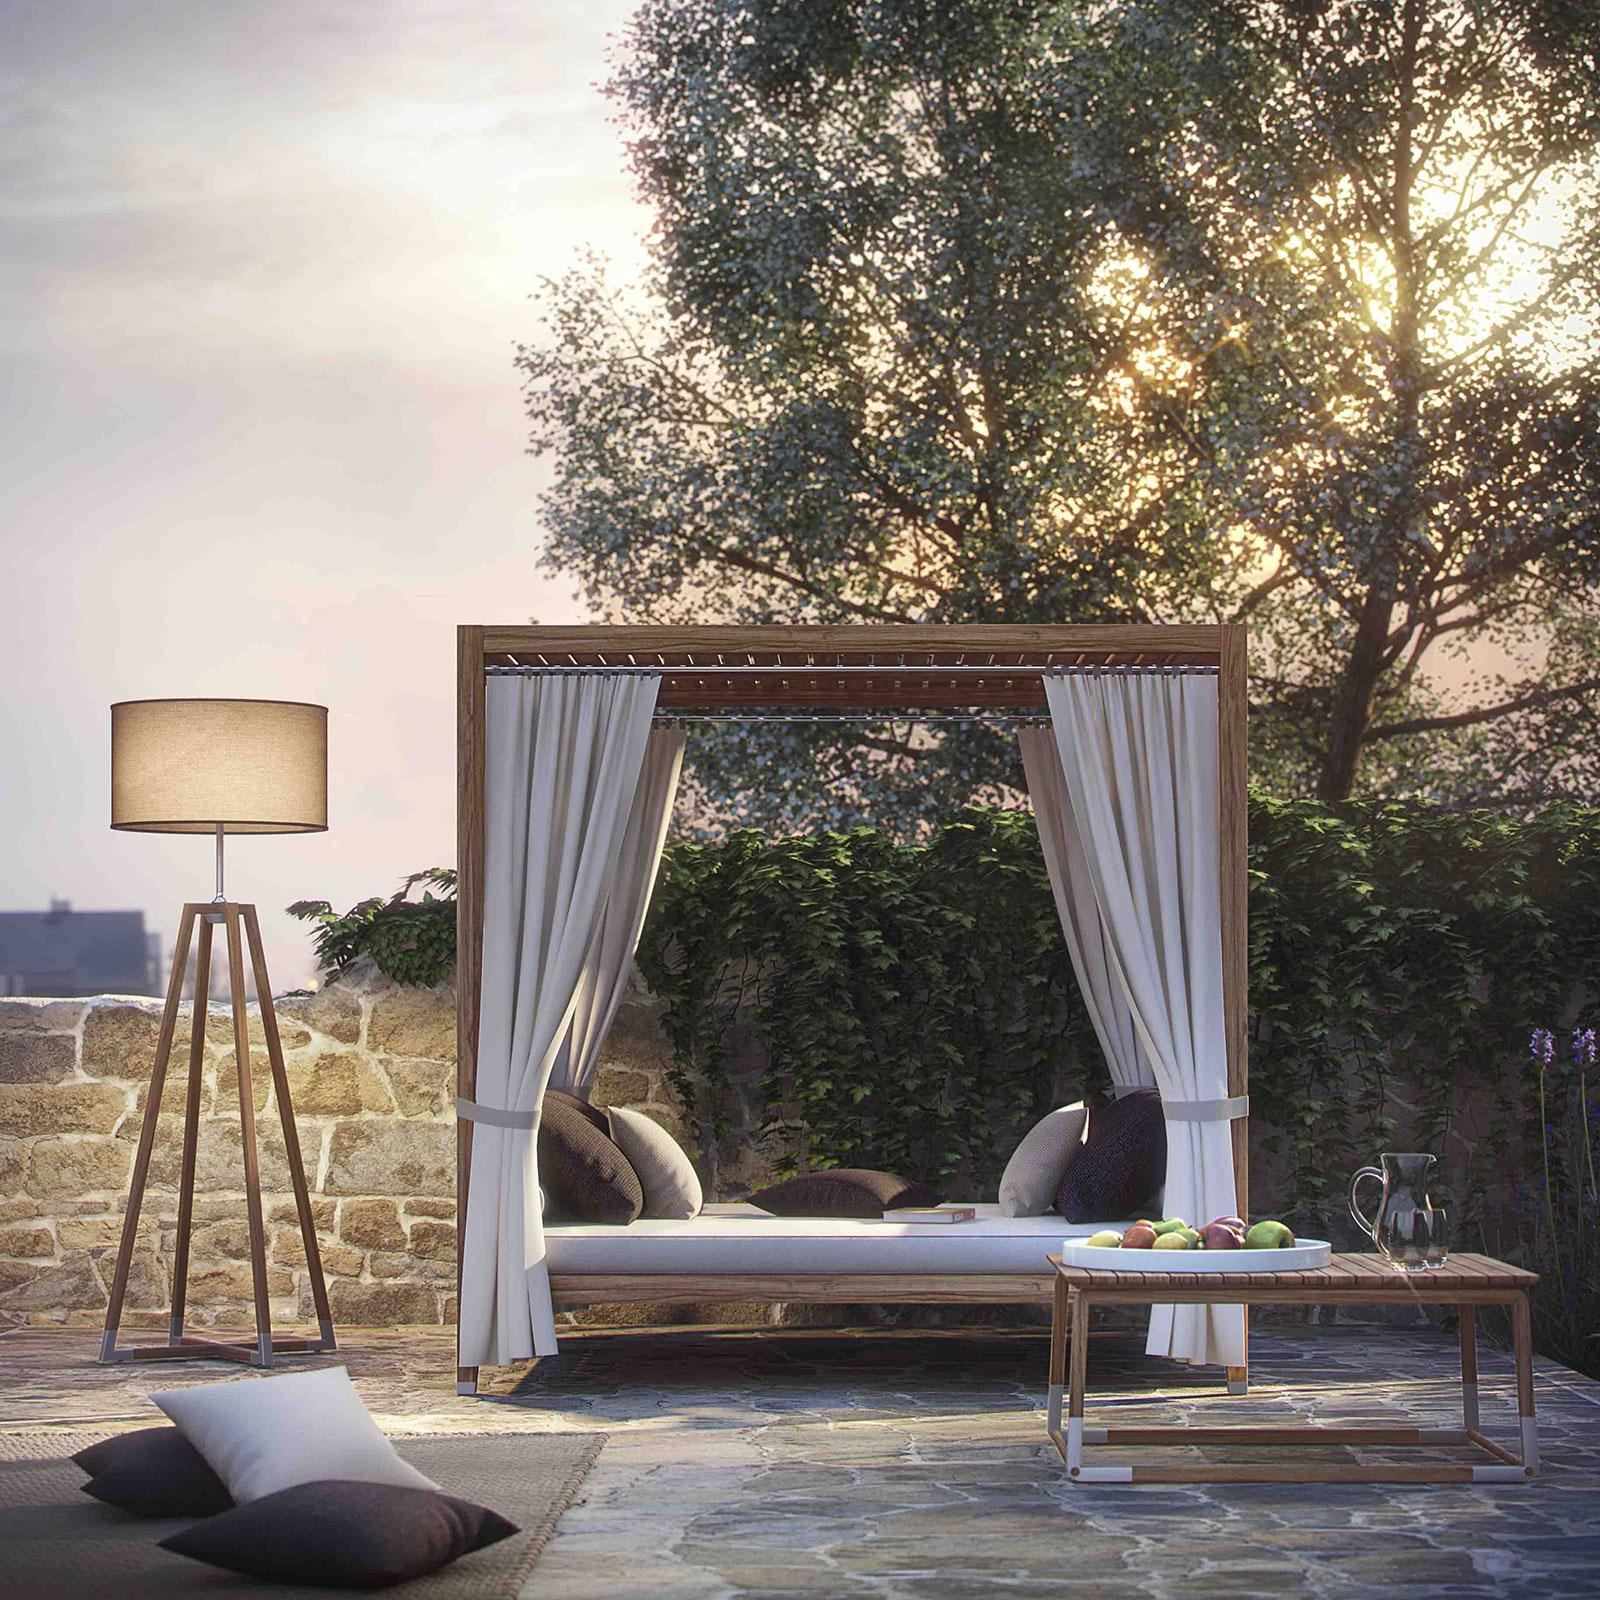 - Day Bed Italian Luxury Outdoor Daybed - Patio Daybed Shop Online